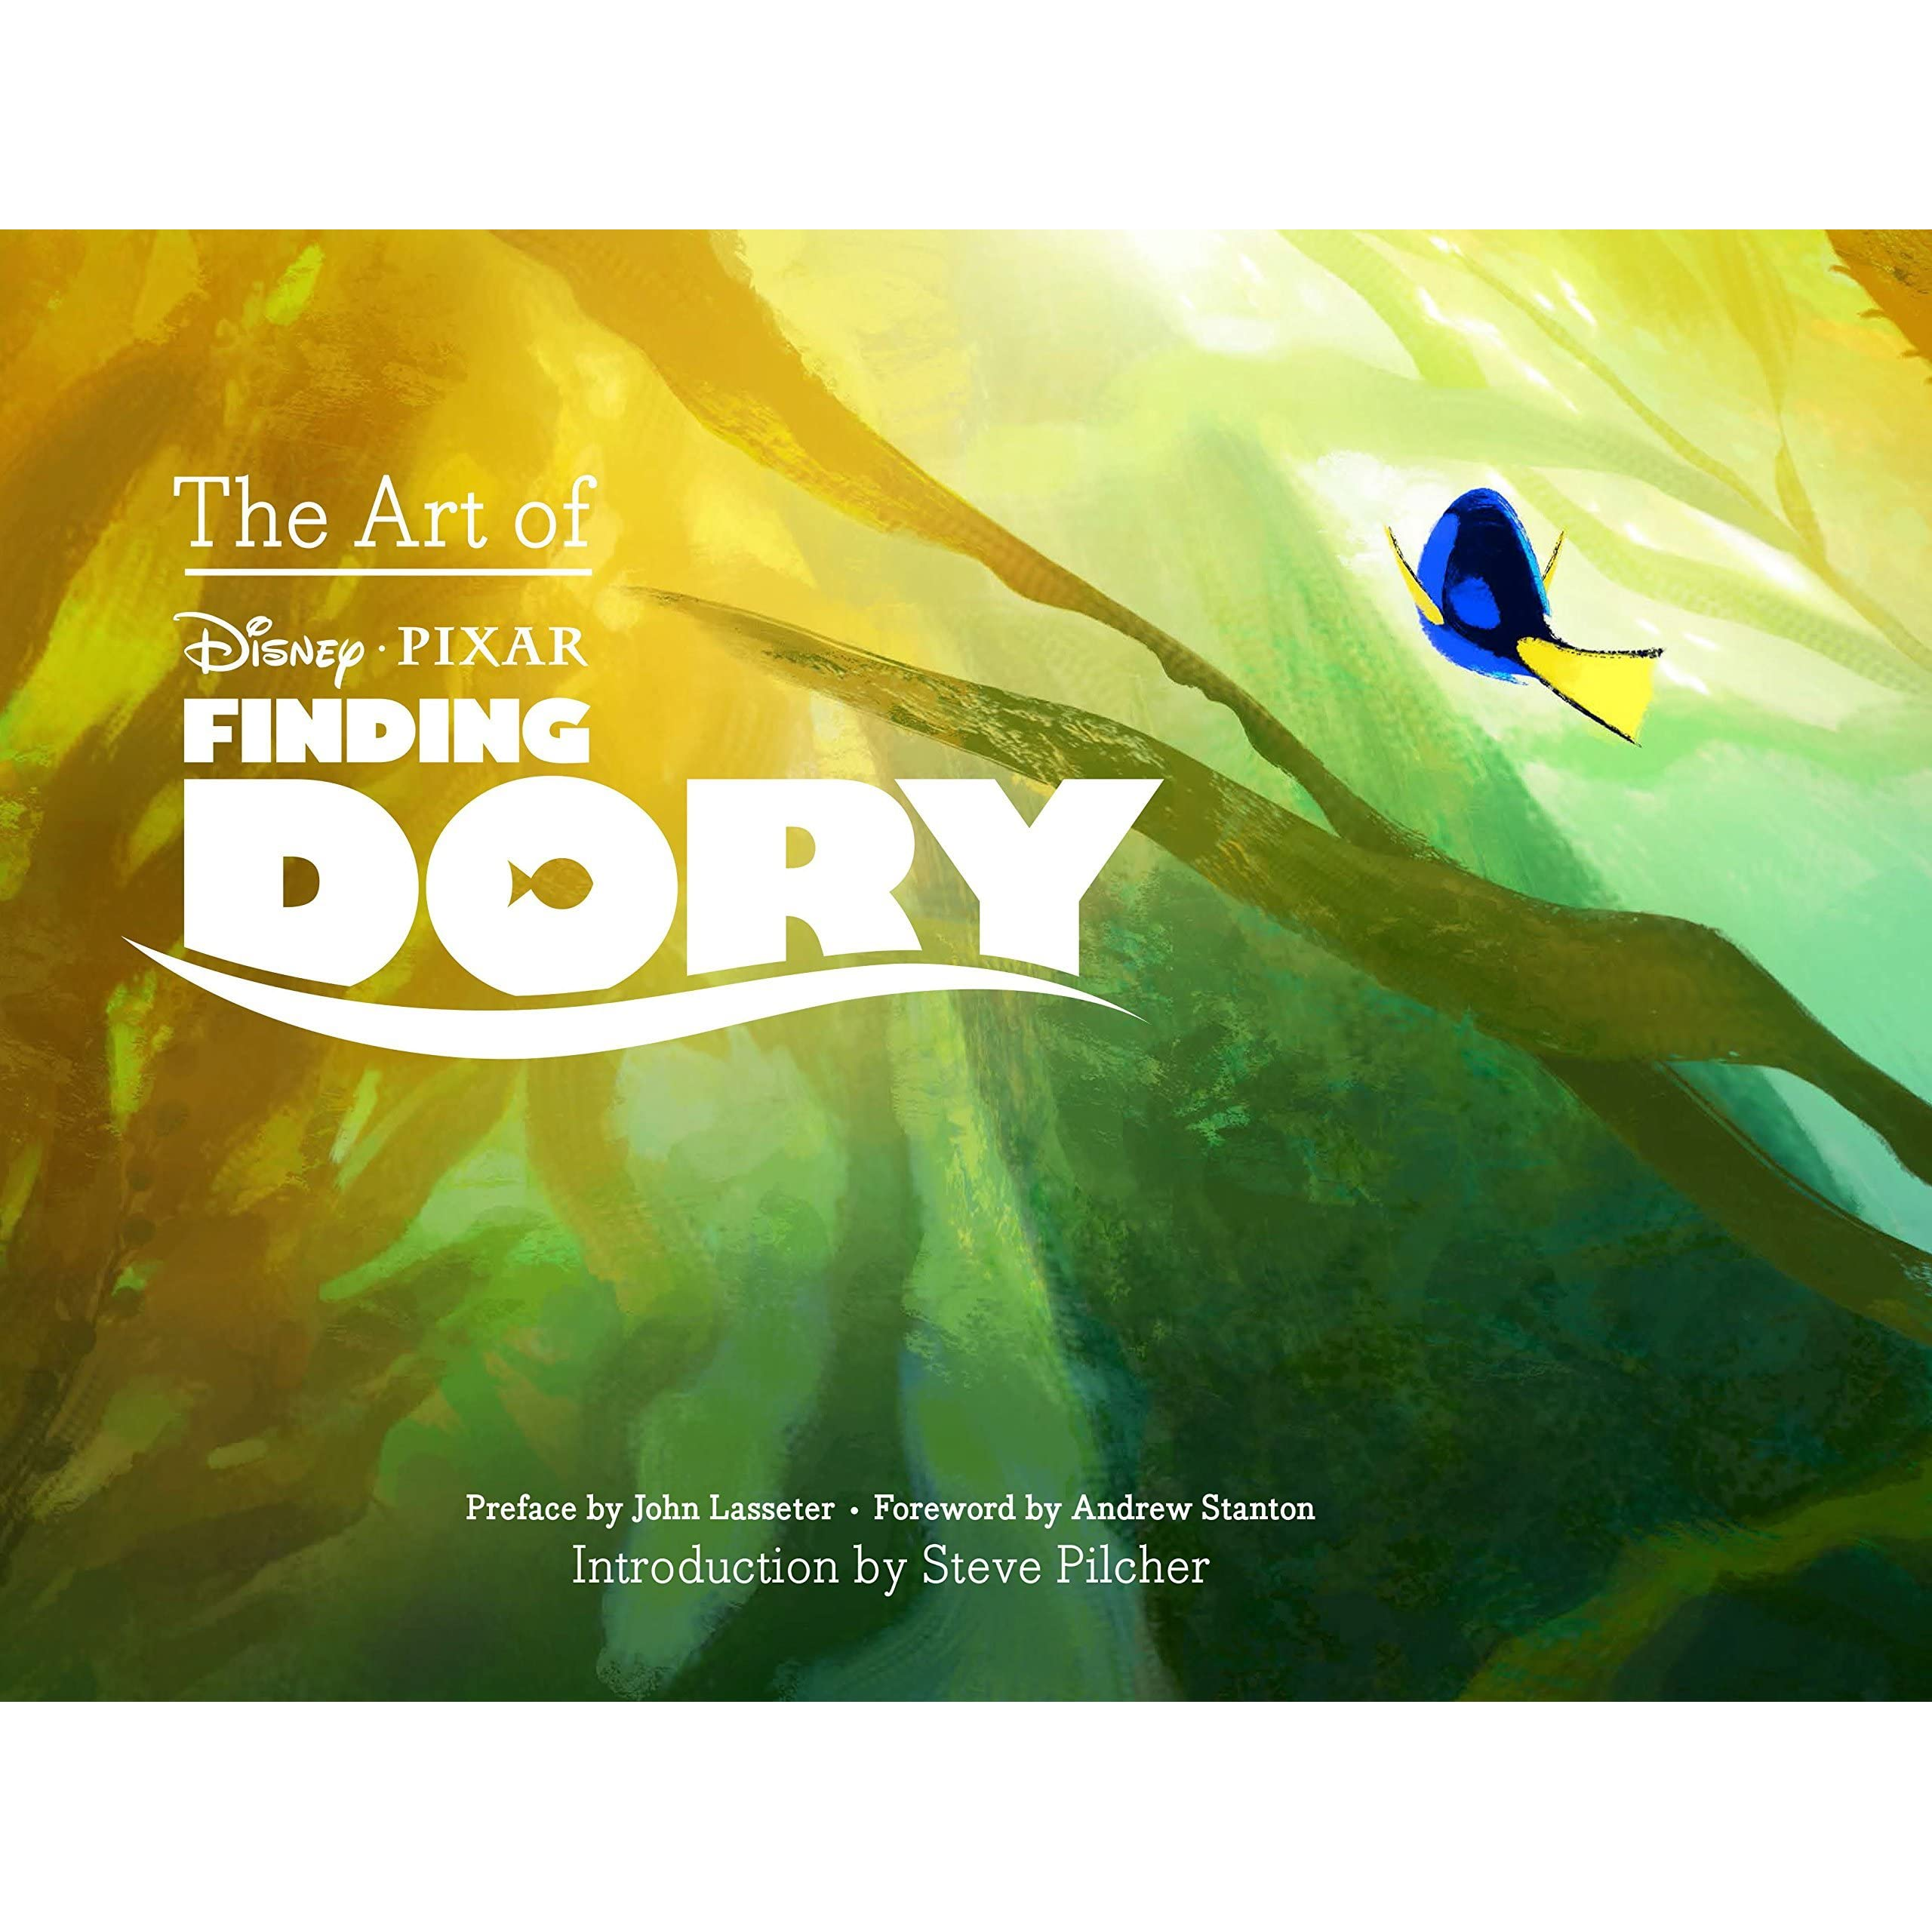 The Art of Finding Dory by Pixar Animation Studios